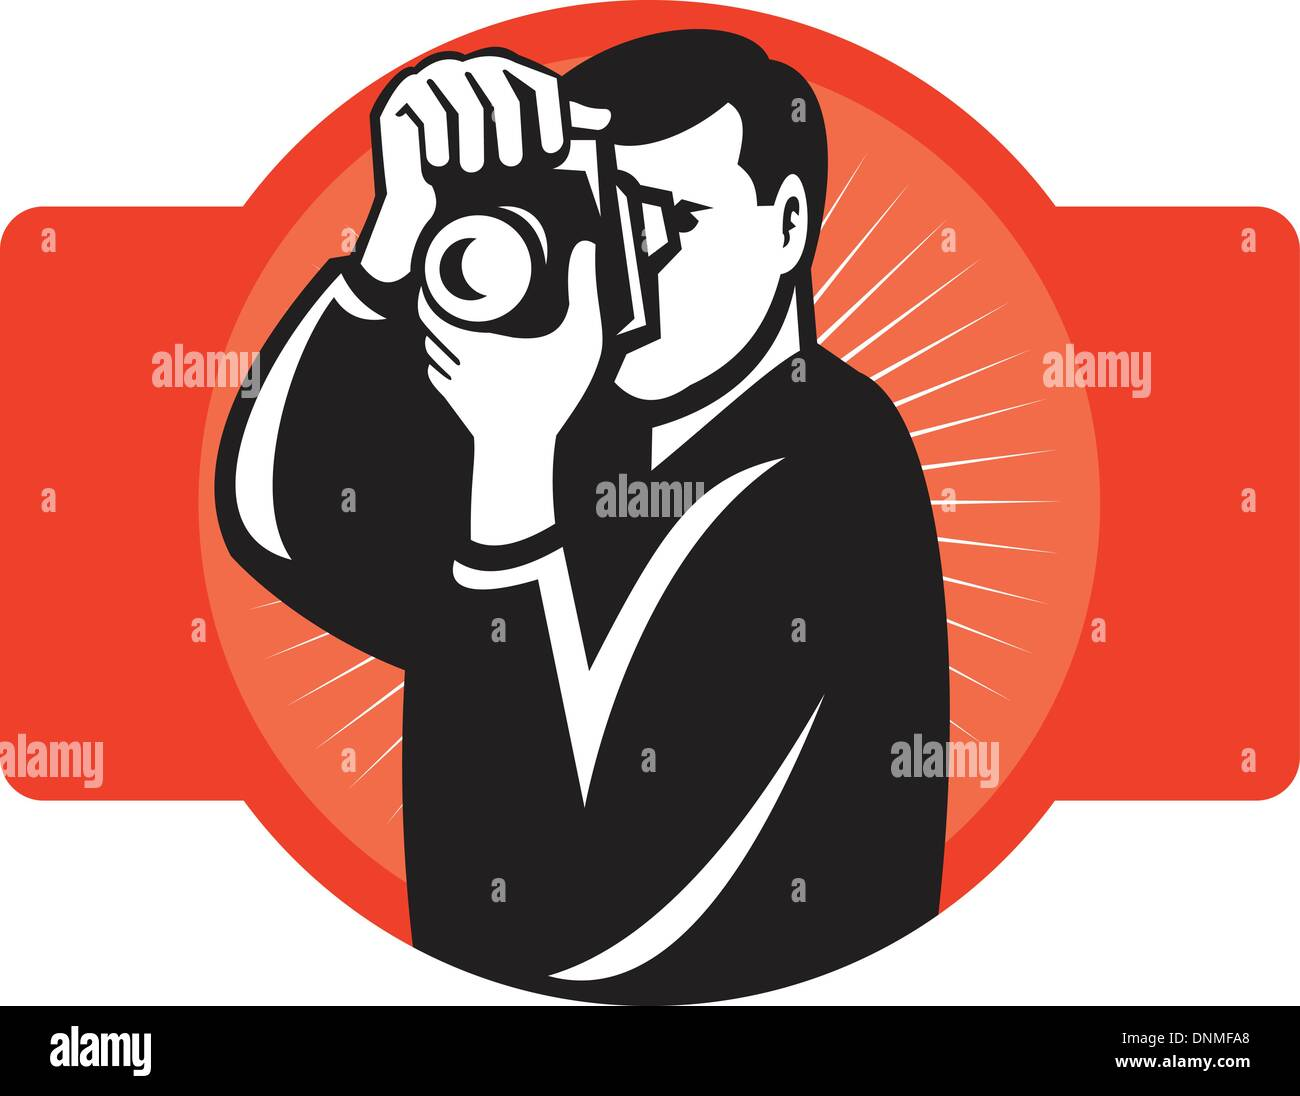 illustration of a photographer aiming slr camera front view on isolated background - Stock Vector